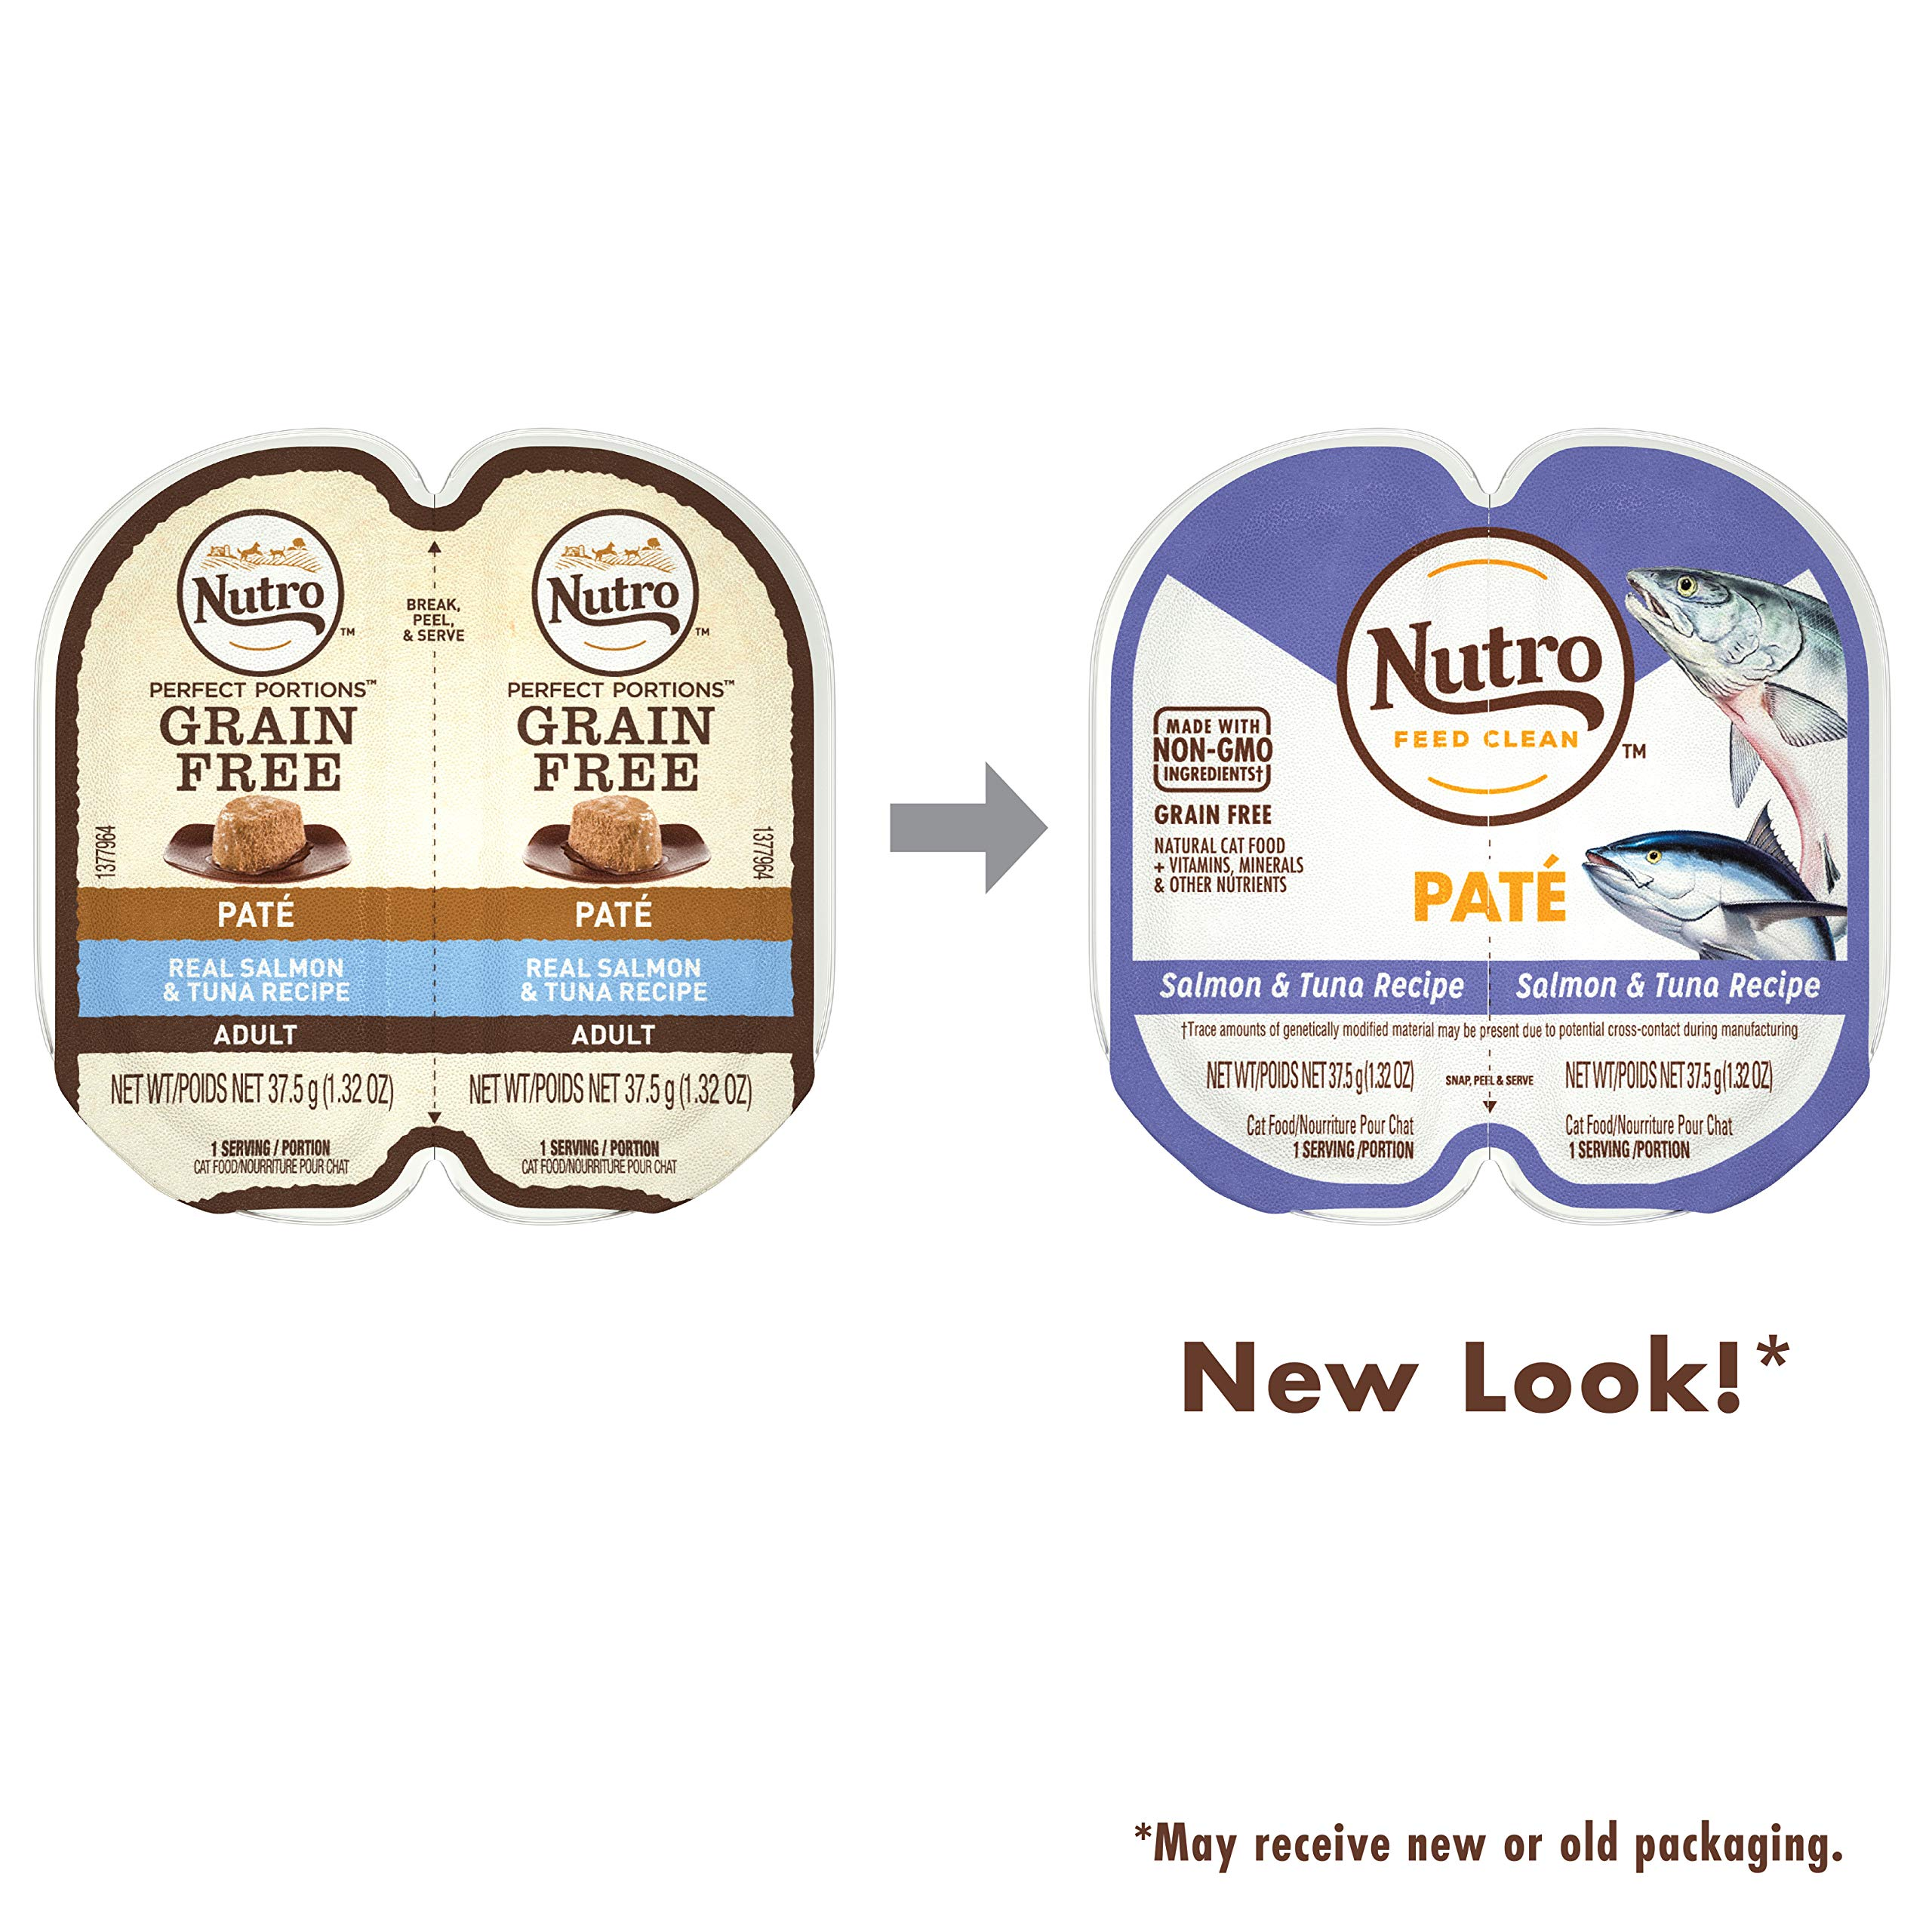 NUTRO PERFECT PORTIONS Grain Free Natural Adult Wet Cat Food Paté Real Salmon & Tuna Recipe, (24) 2.6 oz. Twin-Pack Trays by Nutro